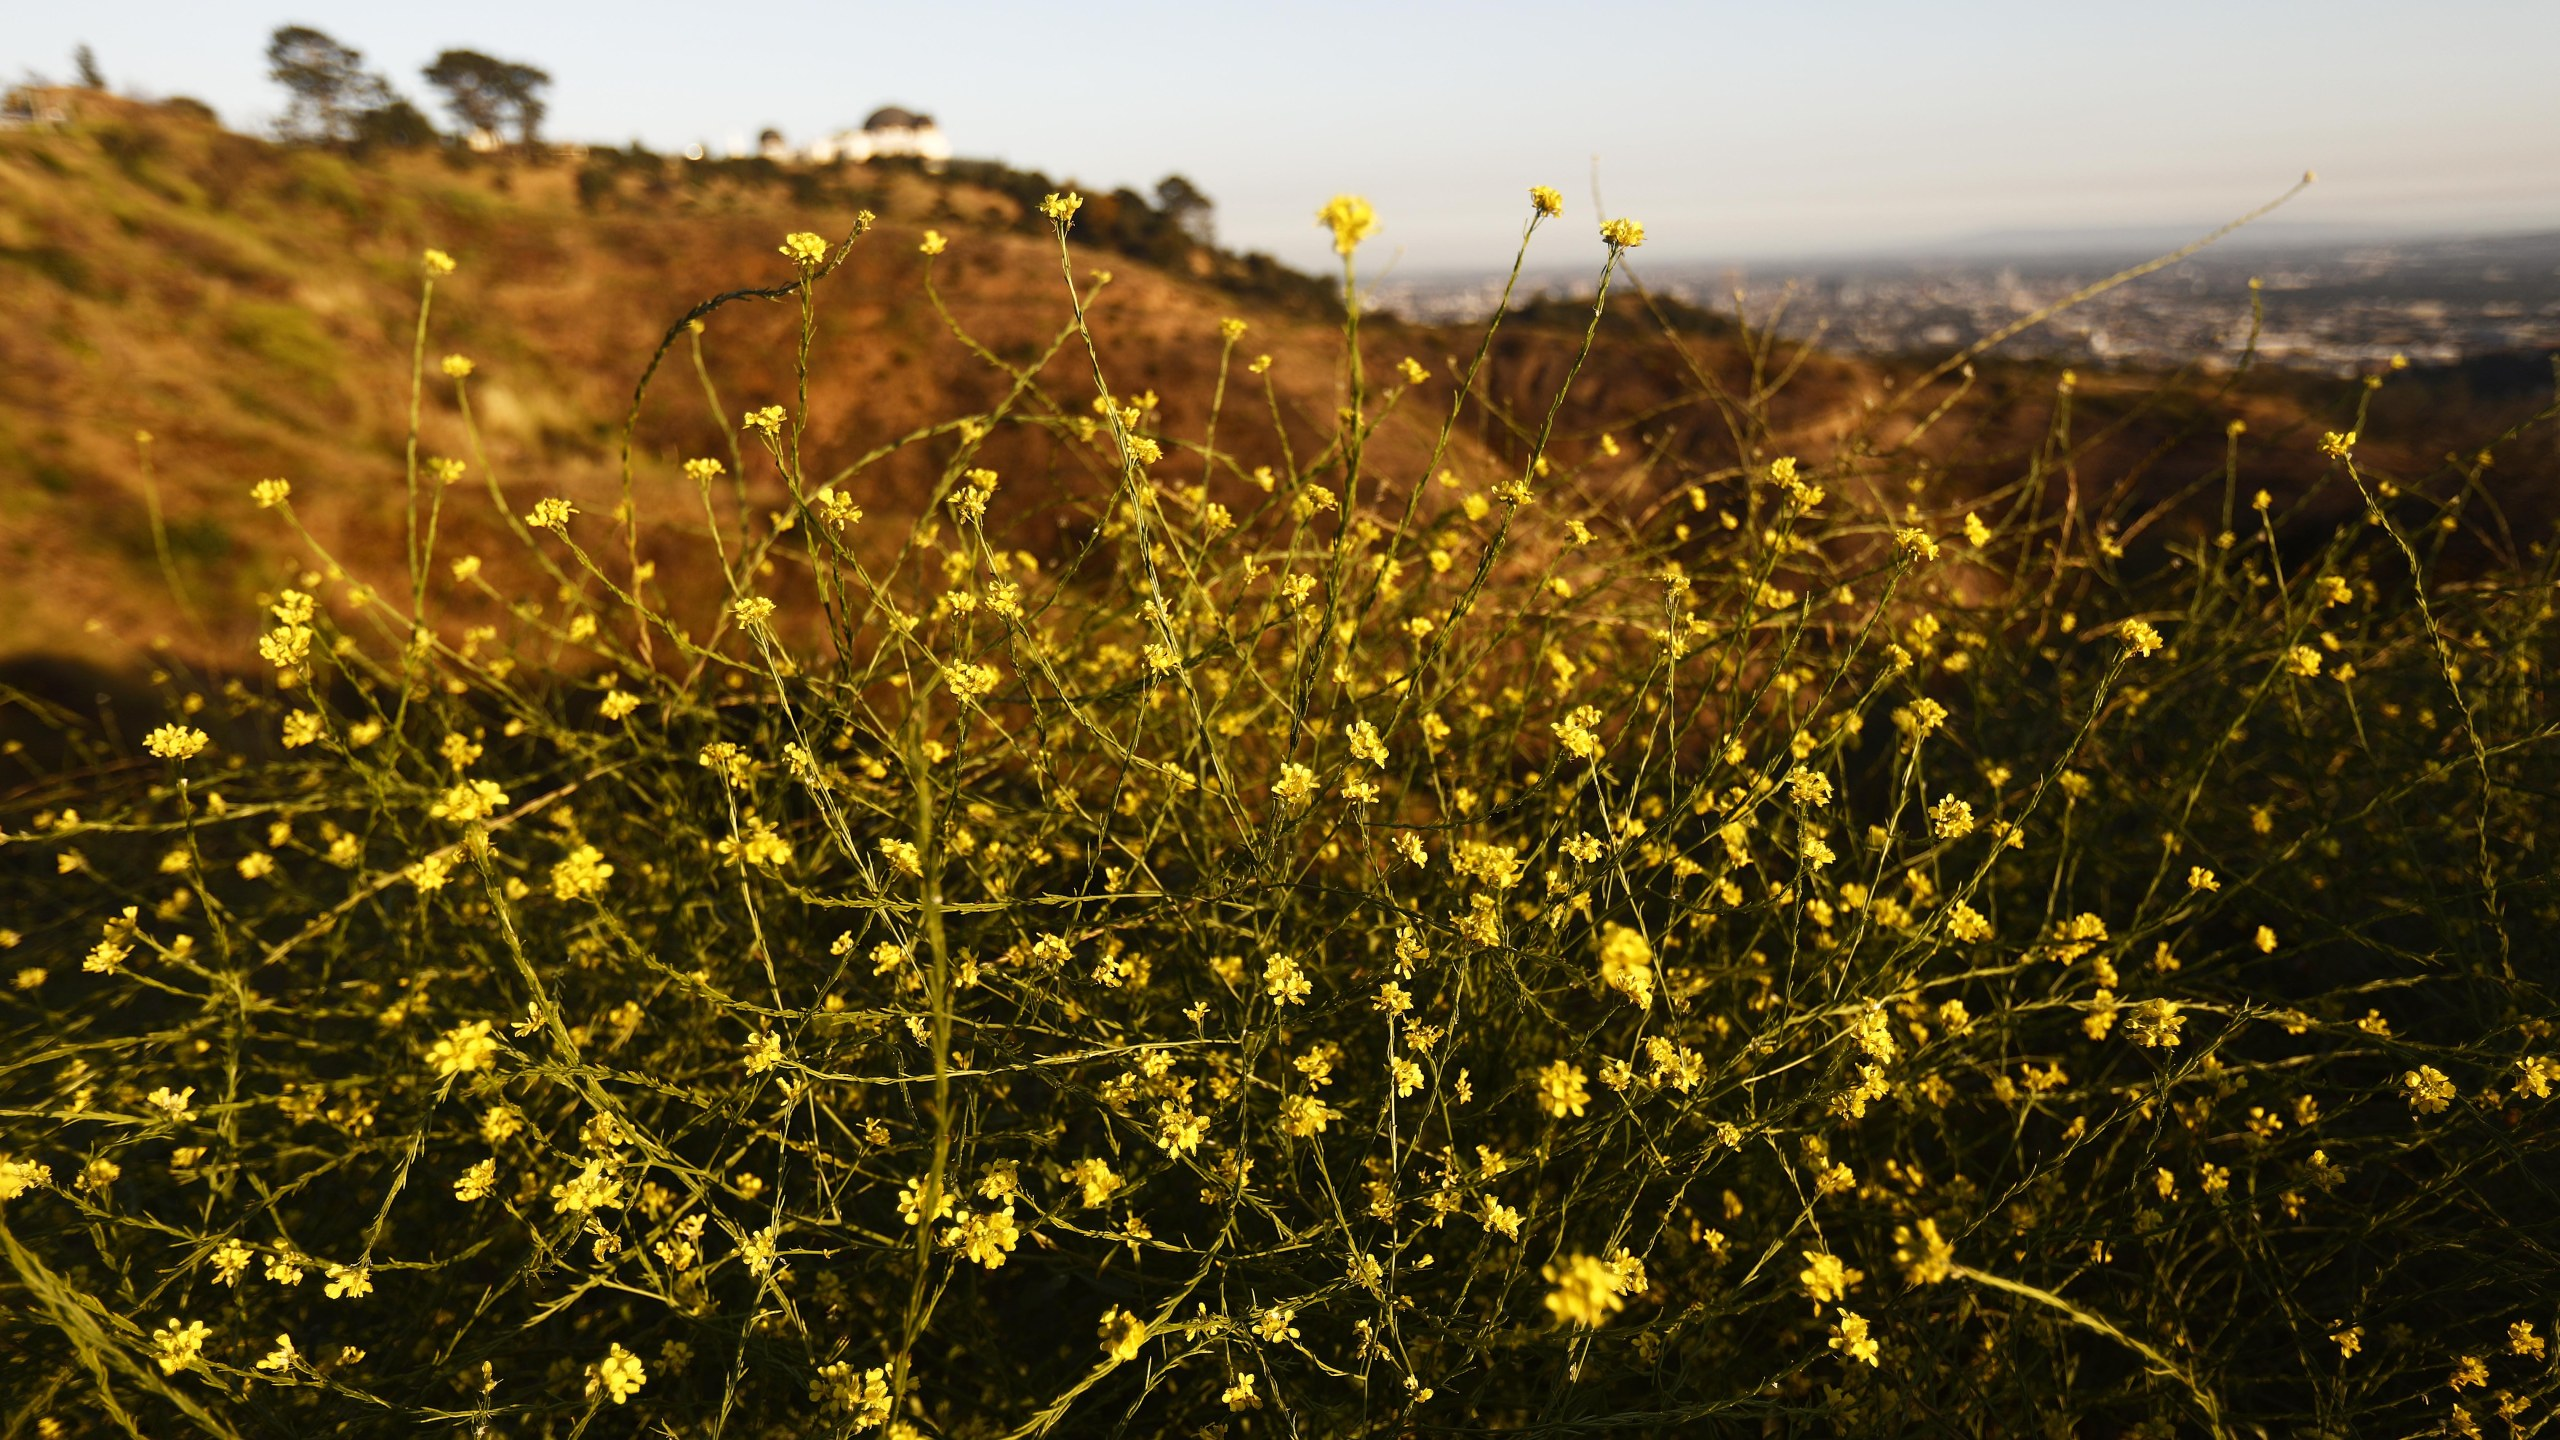 Black mustard plants are seen in Griffith Park on May 28, 2019, in Los Angele. (Credit: Mario Tama/Getty Images)